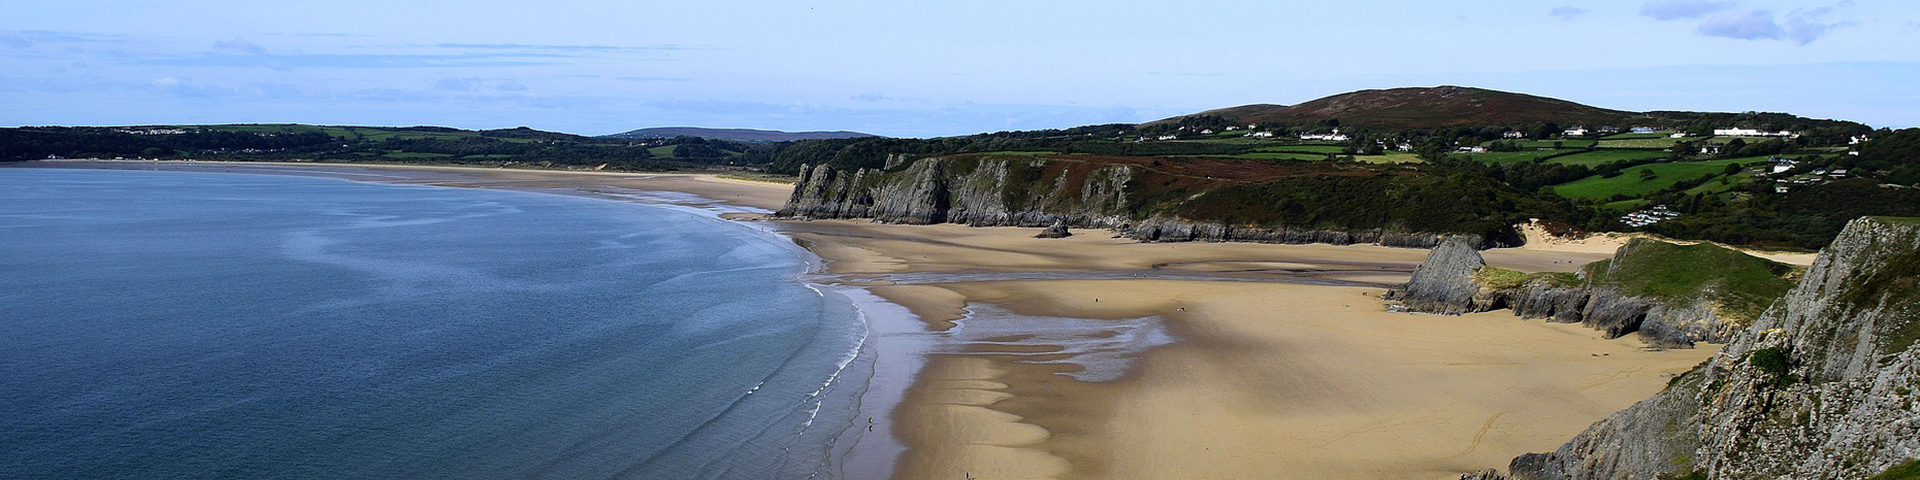 luxury holiday cottages, best uk holidays for families, countryside breaks for couples